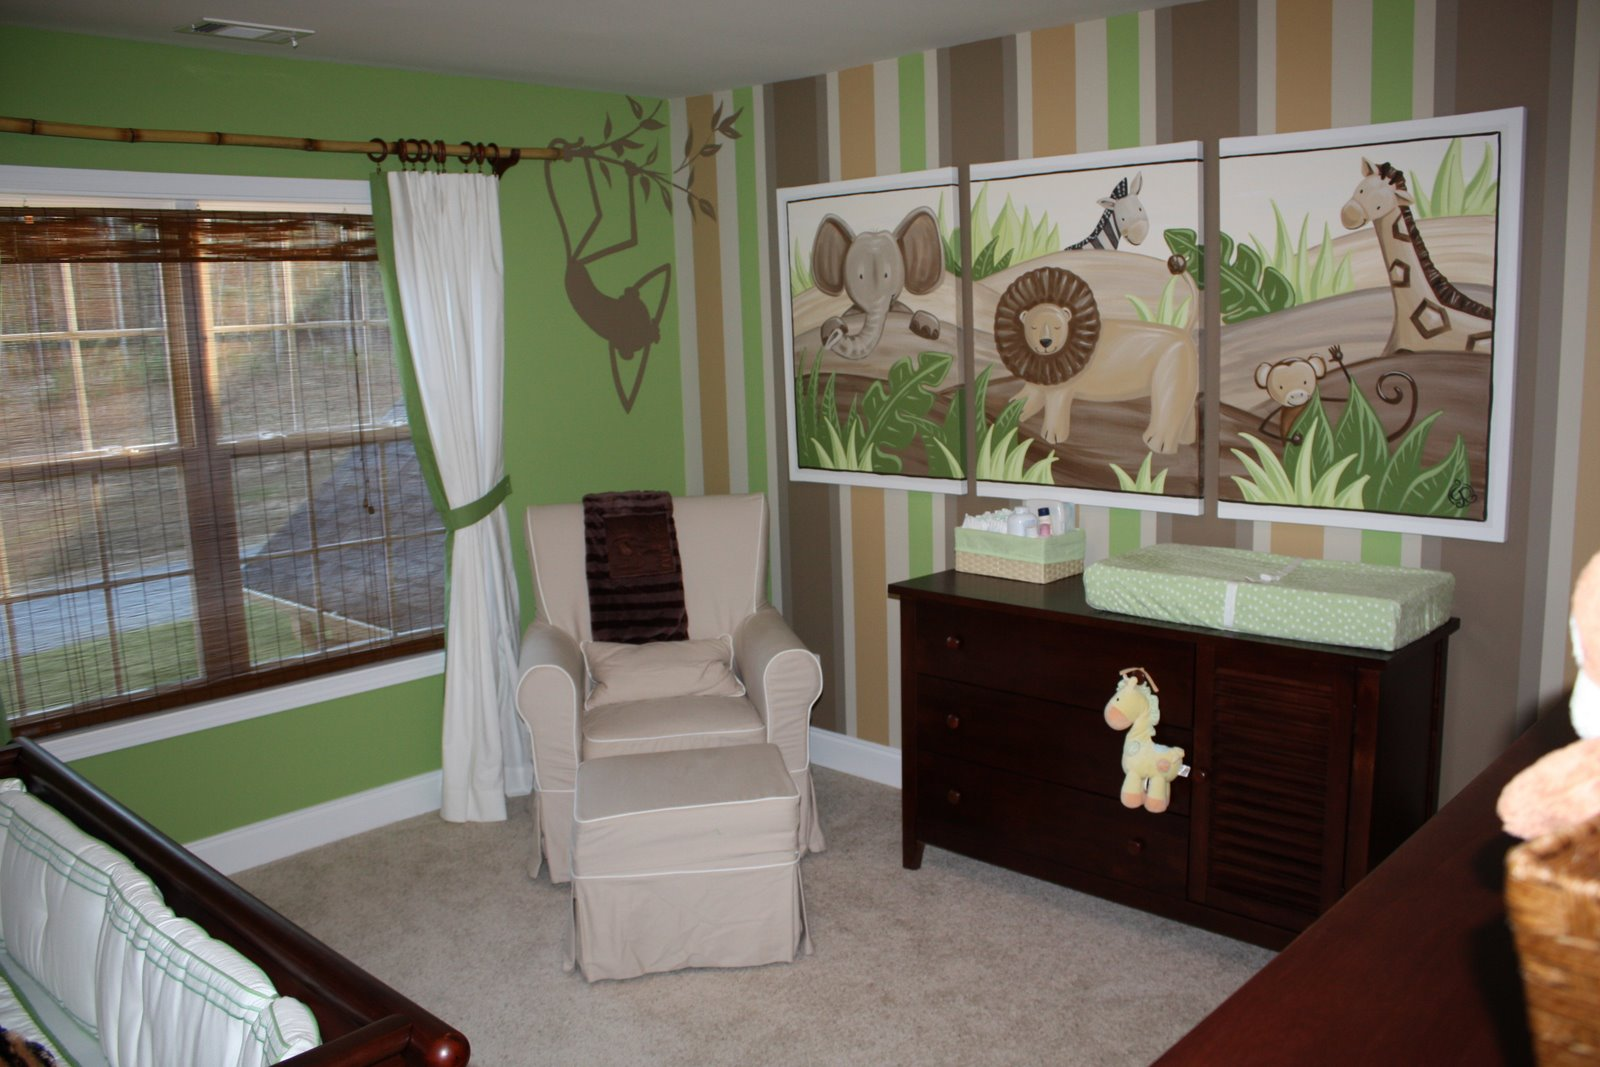 Simple Rectilinear Painting And Separated Mural To Create Focal Point Of Baby  Nursery Interior